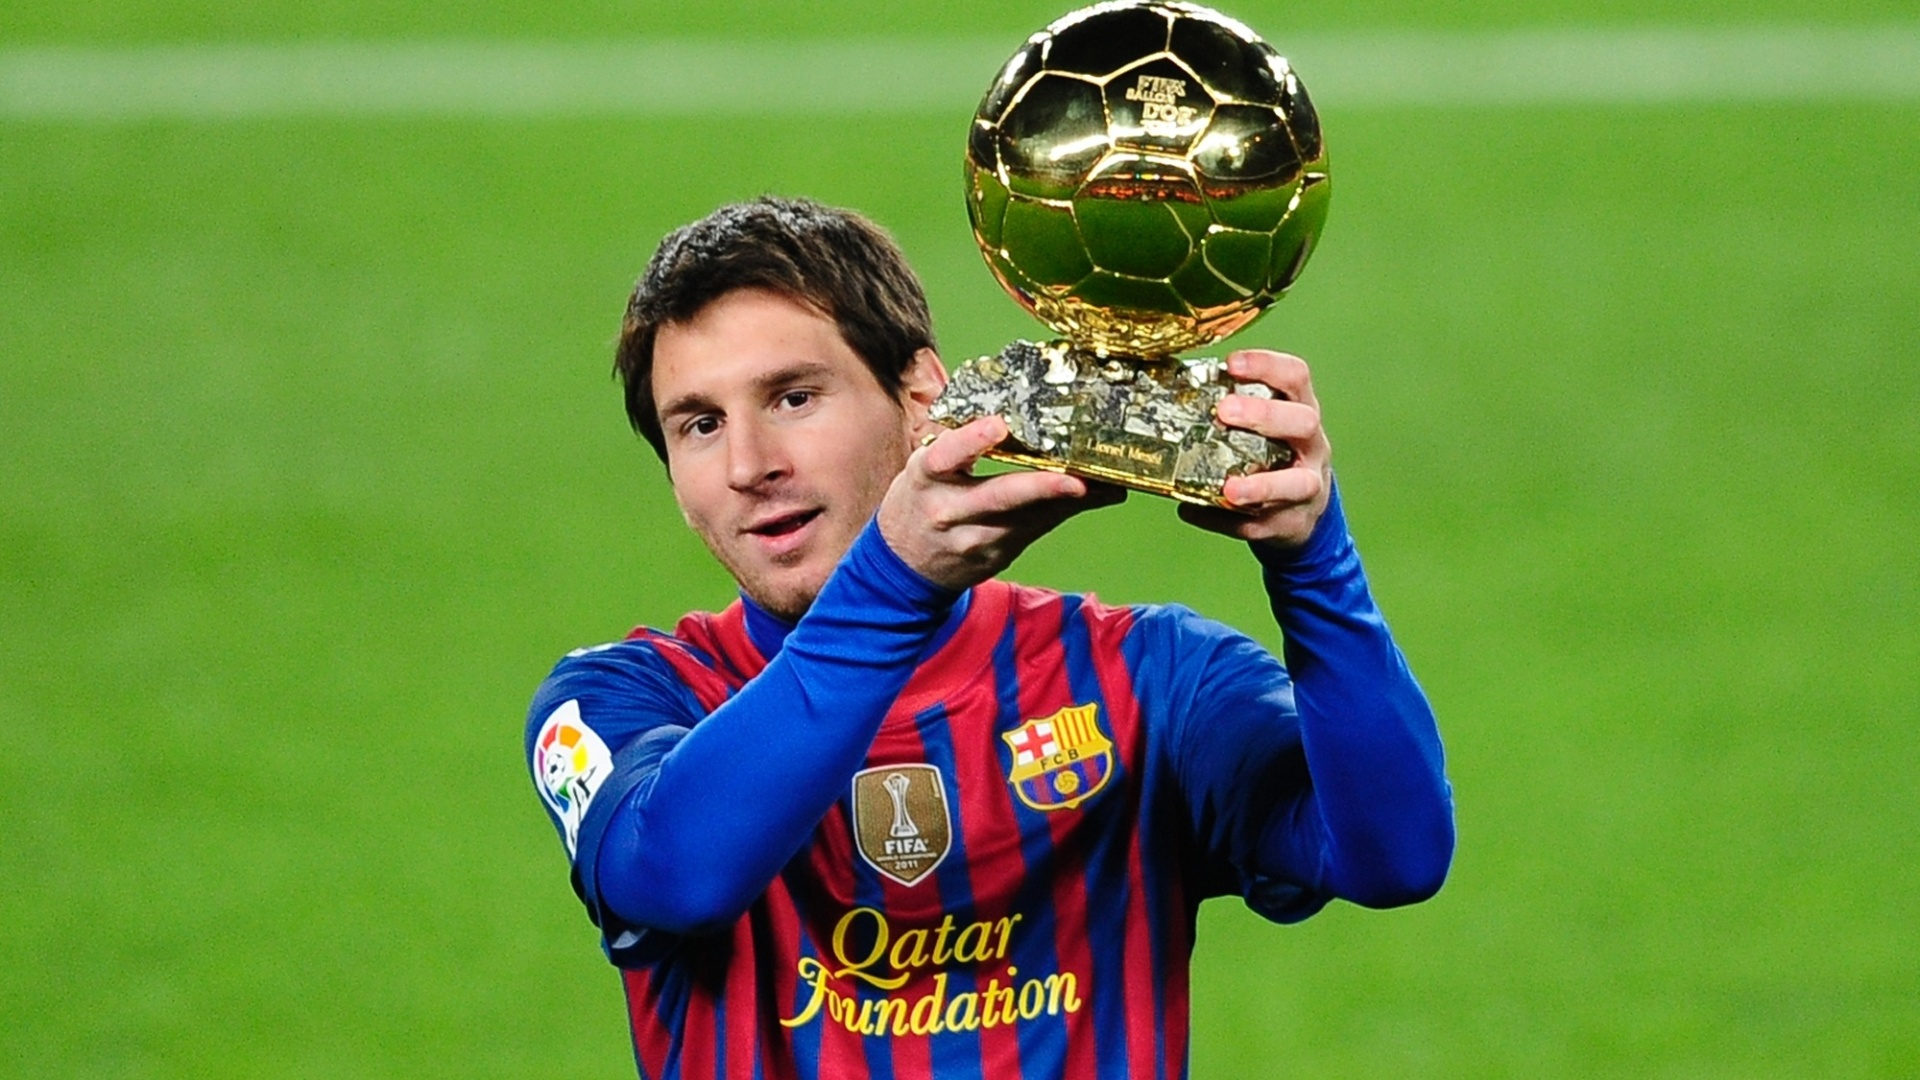 lionel messi cup hd free football player background mobile desktop download wallpaper pictures